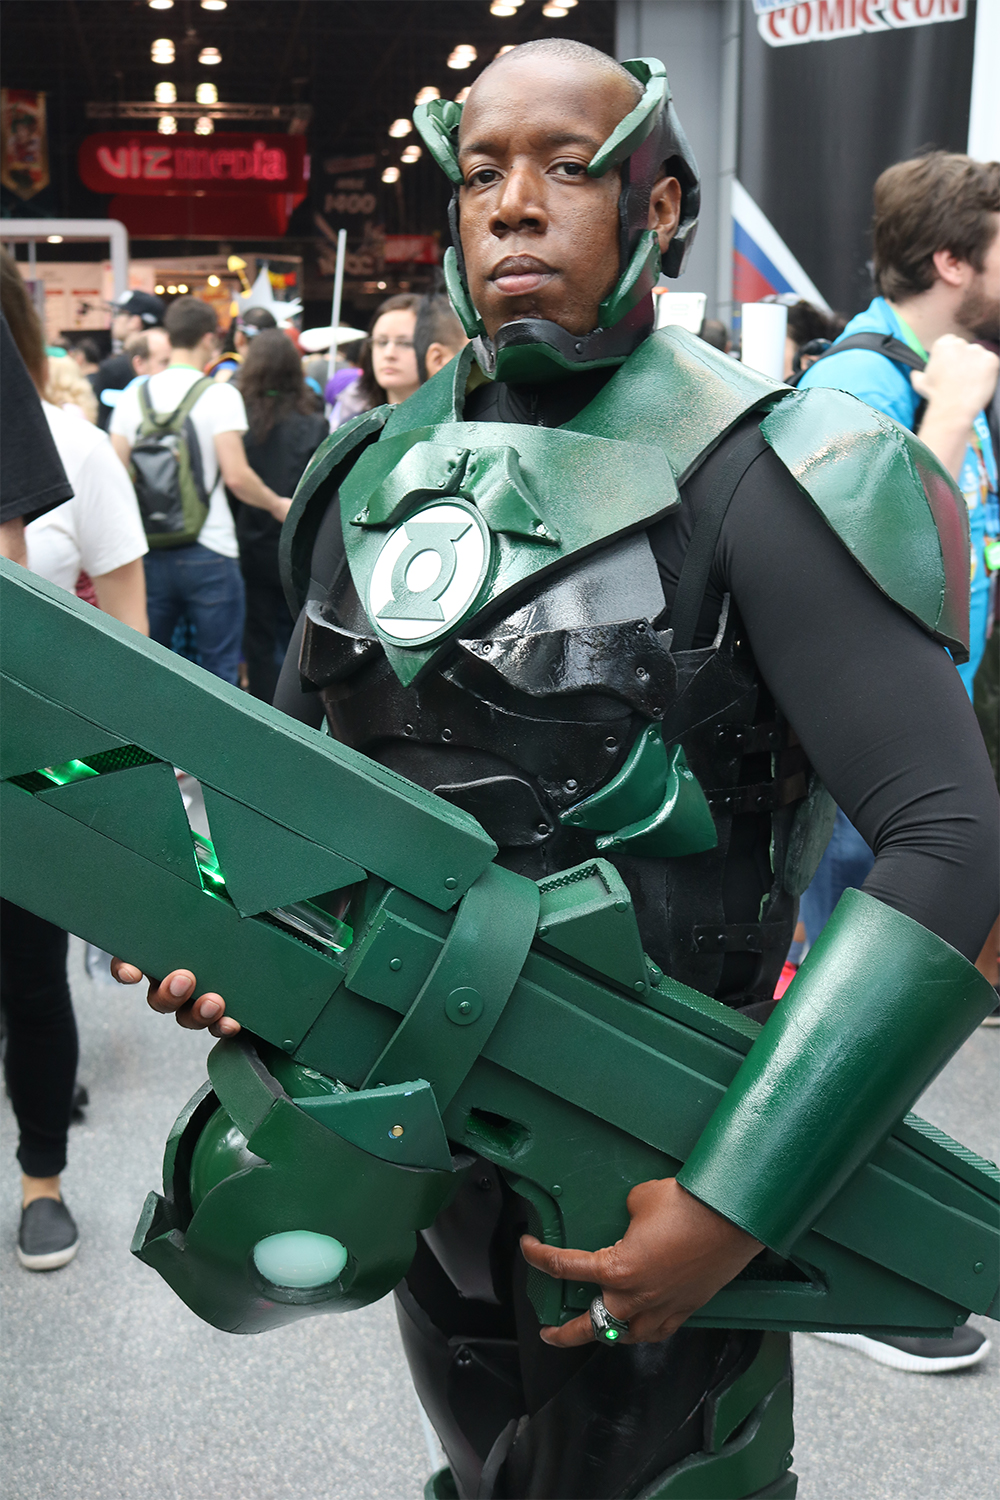 Green Lantern Cosplay Web.jpg